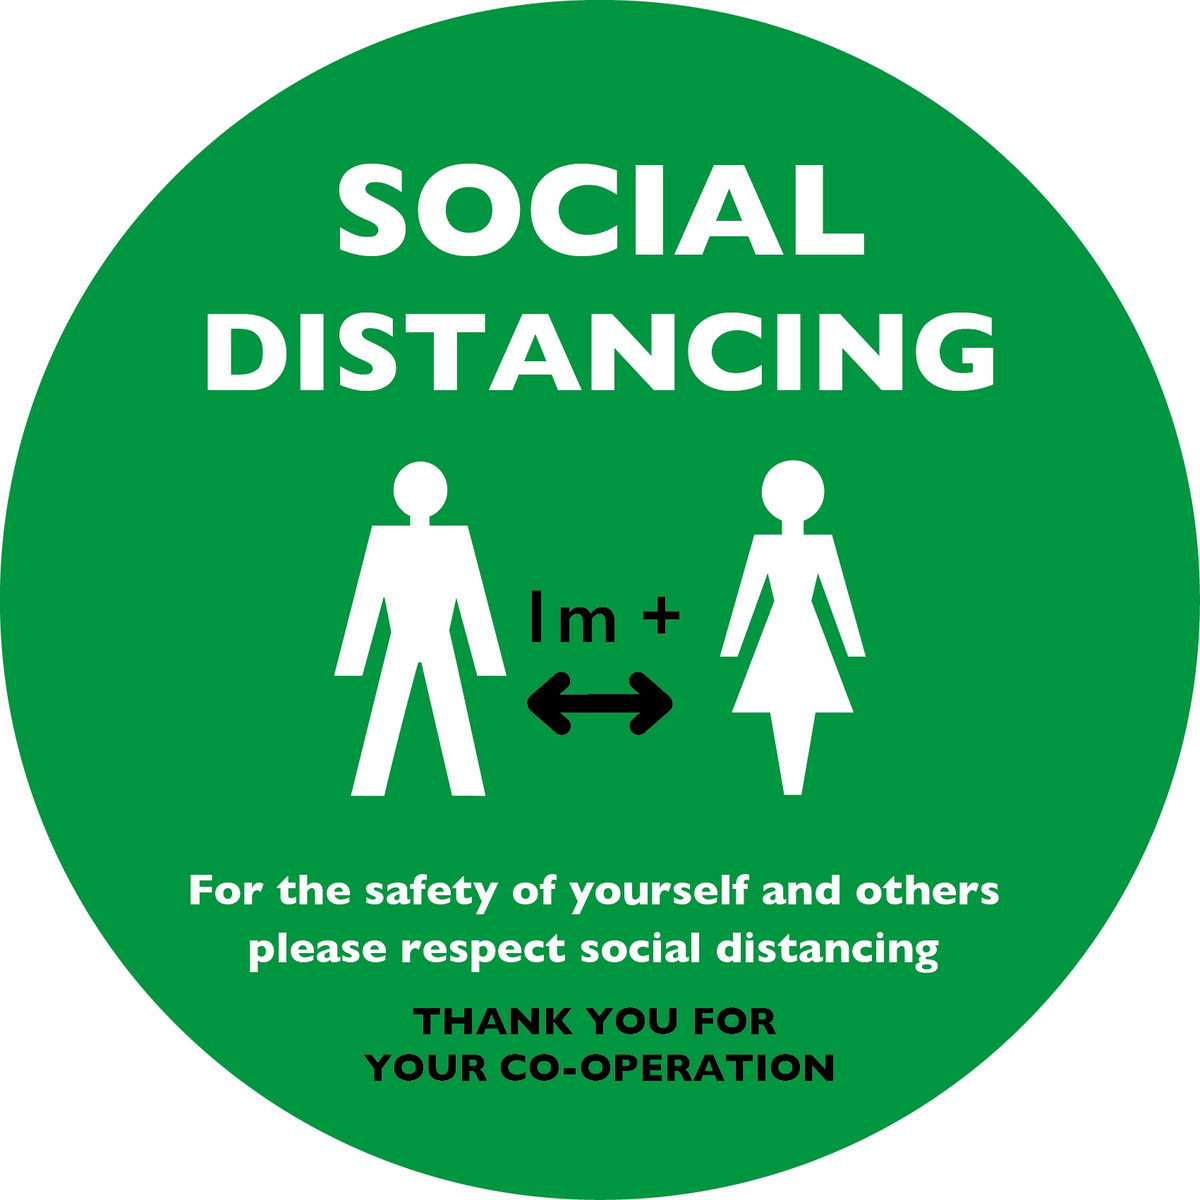 Pandemic Wooden Pins accessory set of 6 Social Distancing